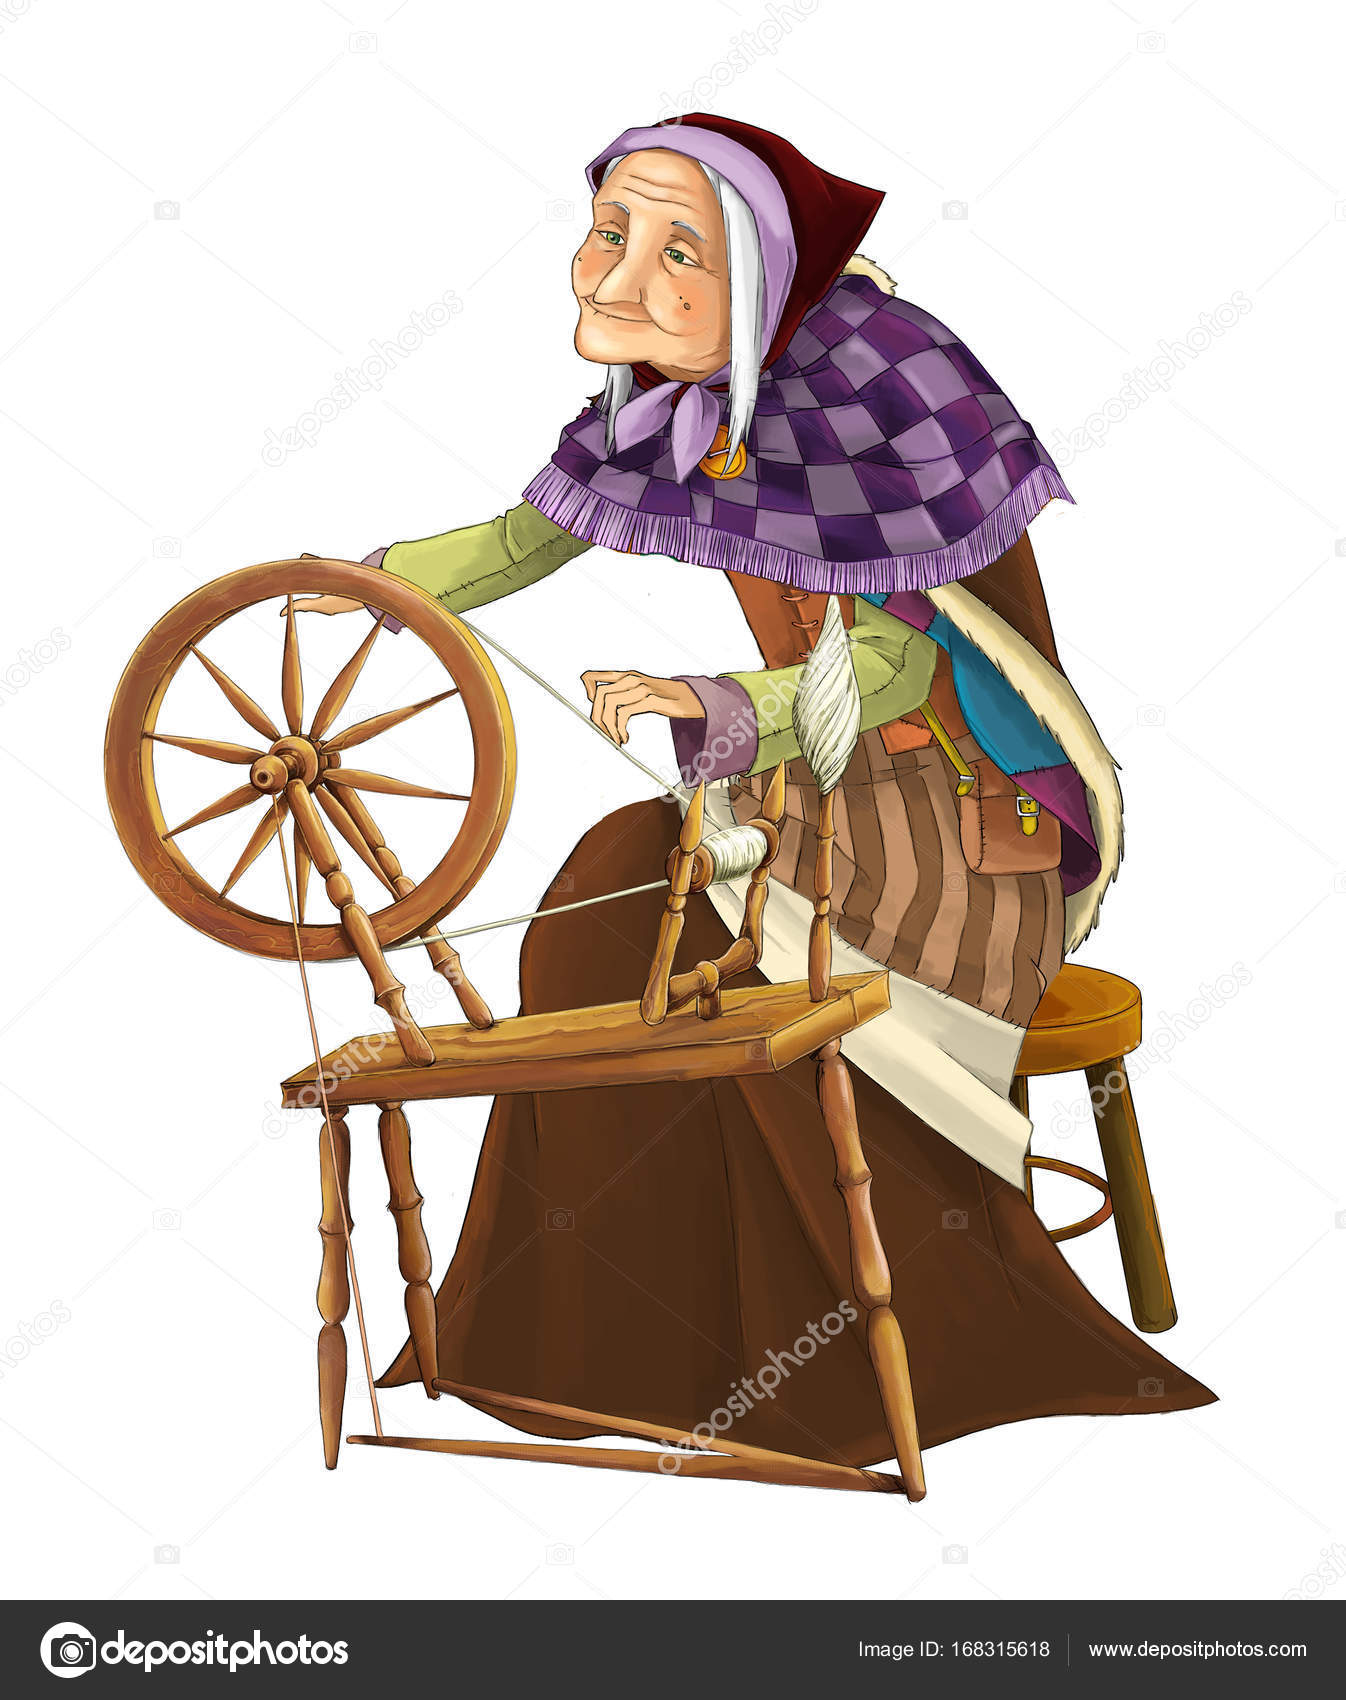 Cartoon sorceress image | Cartoon Older Woman Spinning Wheel